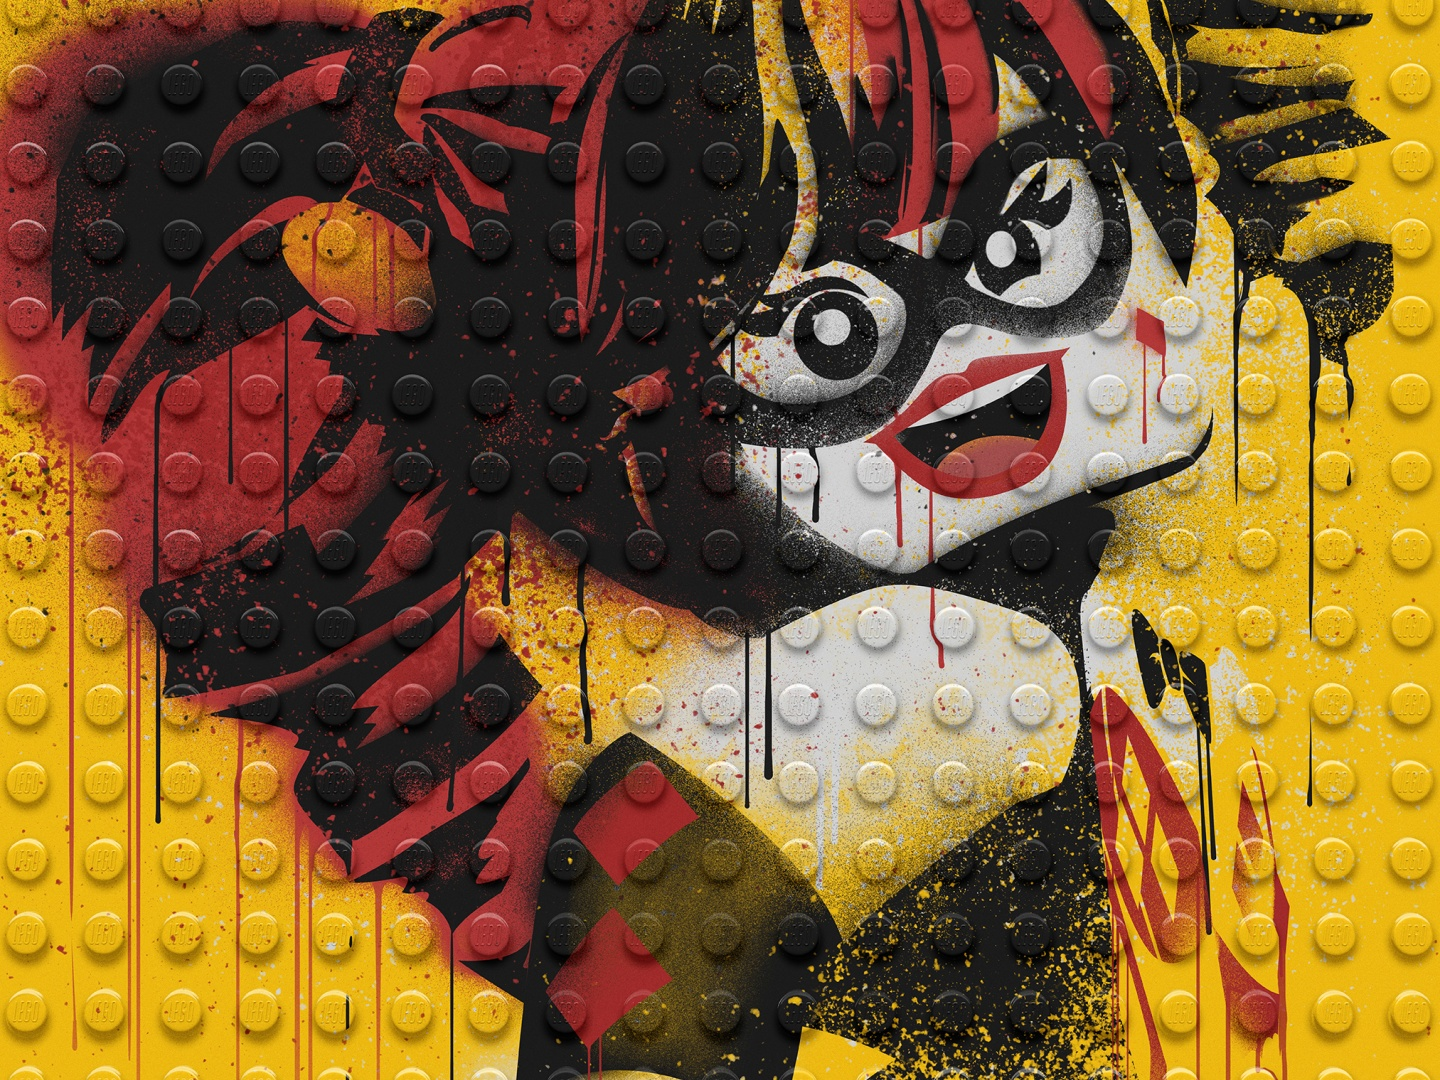 Image for The LEGO Batman Movie - Graffiti Wild Postings | Harley Quinn